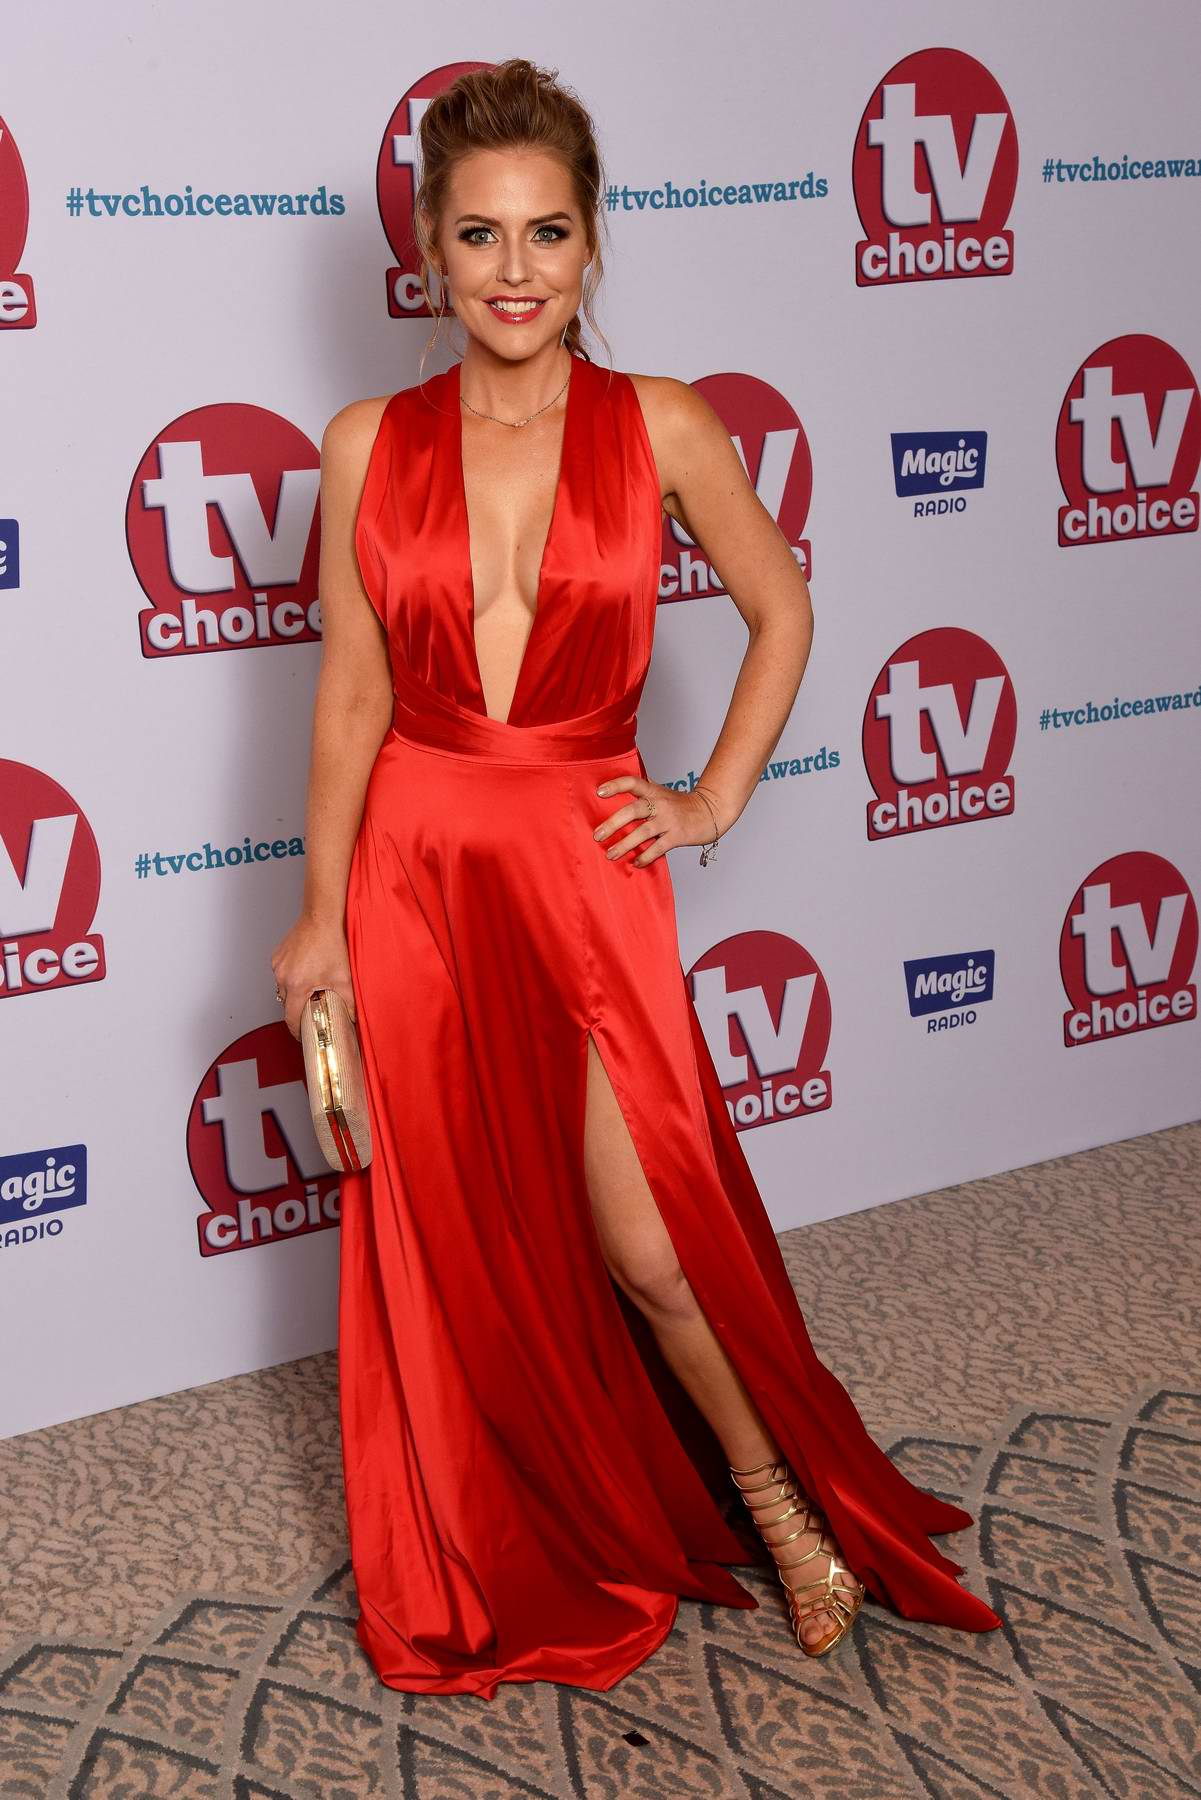 Stephanie Waring attends the TV Choice Awards 2017 held at the Dorchester in London